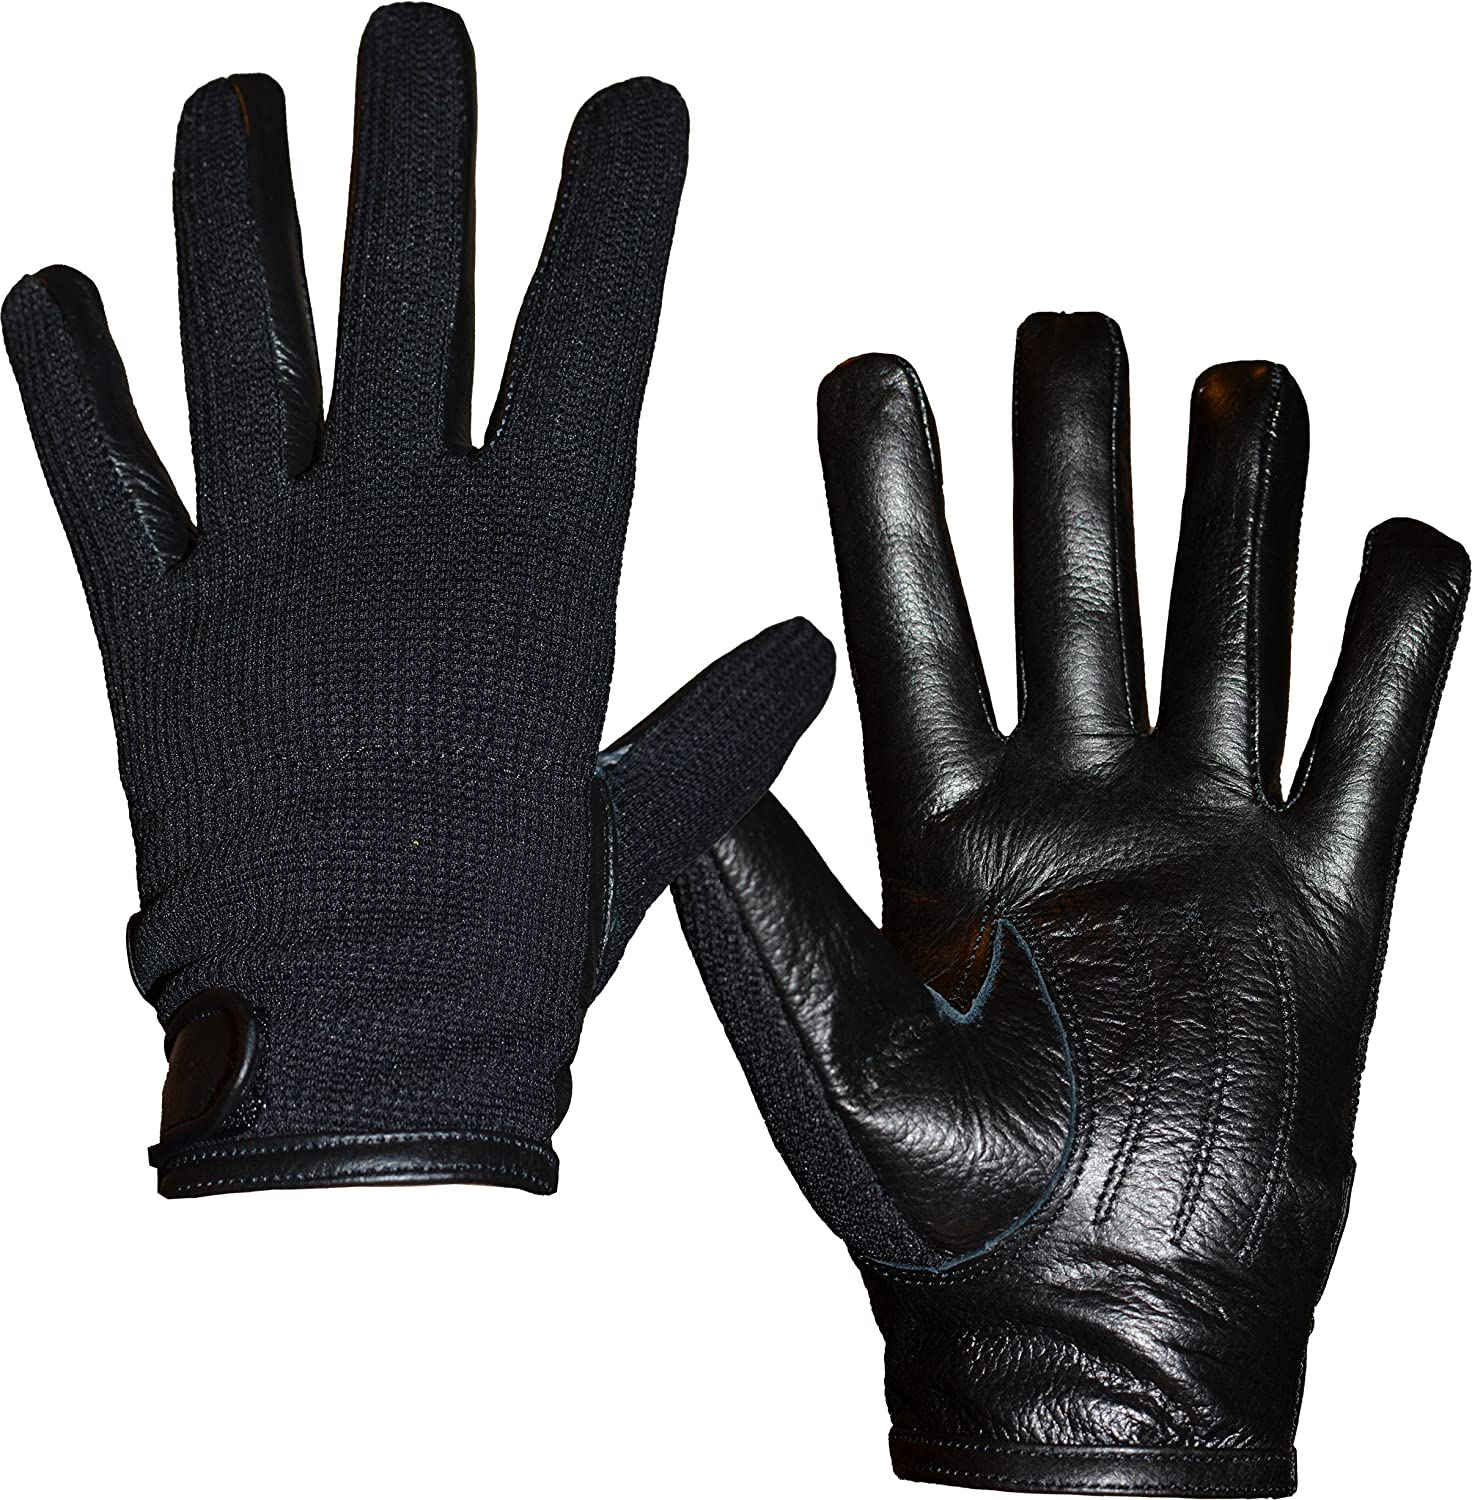 Mens leather gloves at debenhams - Unisex Mens Womens Semi Leather Gloves Stretch Fit Xs S M Amazon Co Uk Clothing